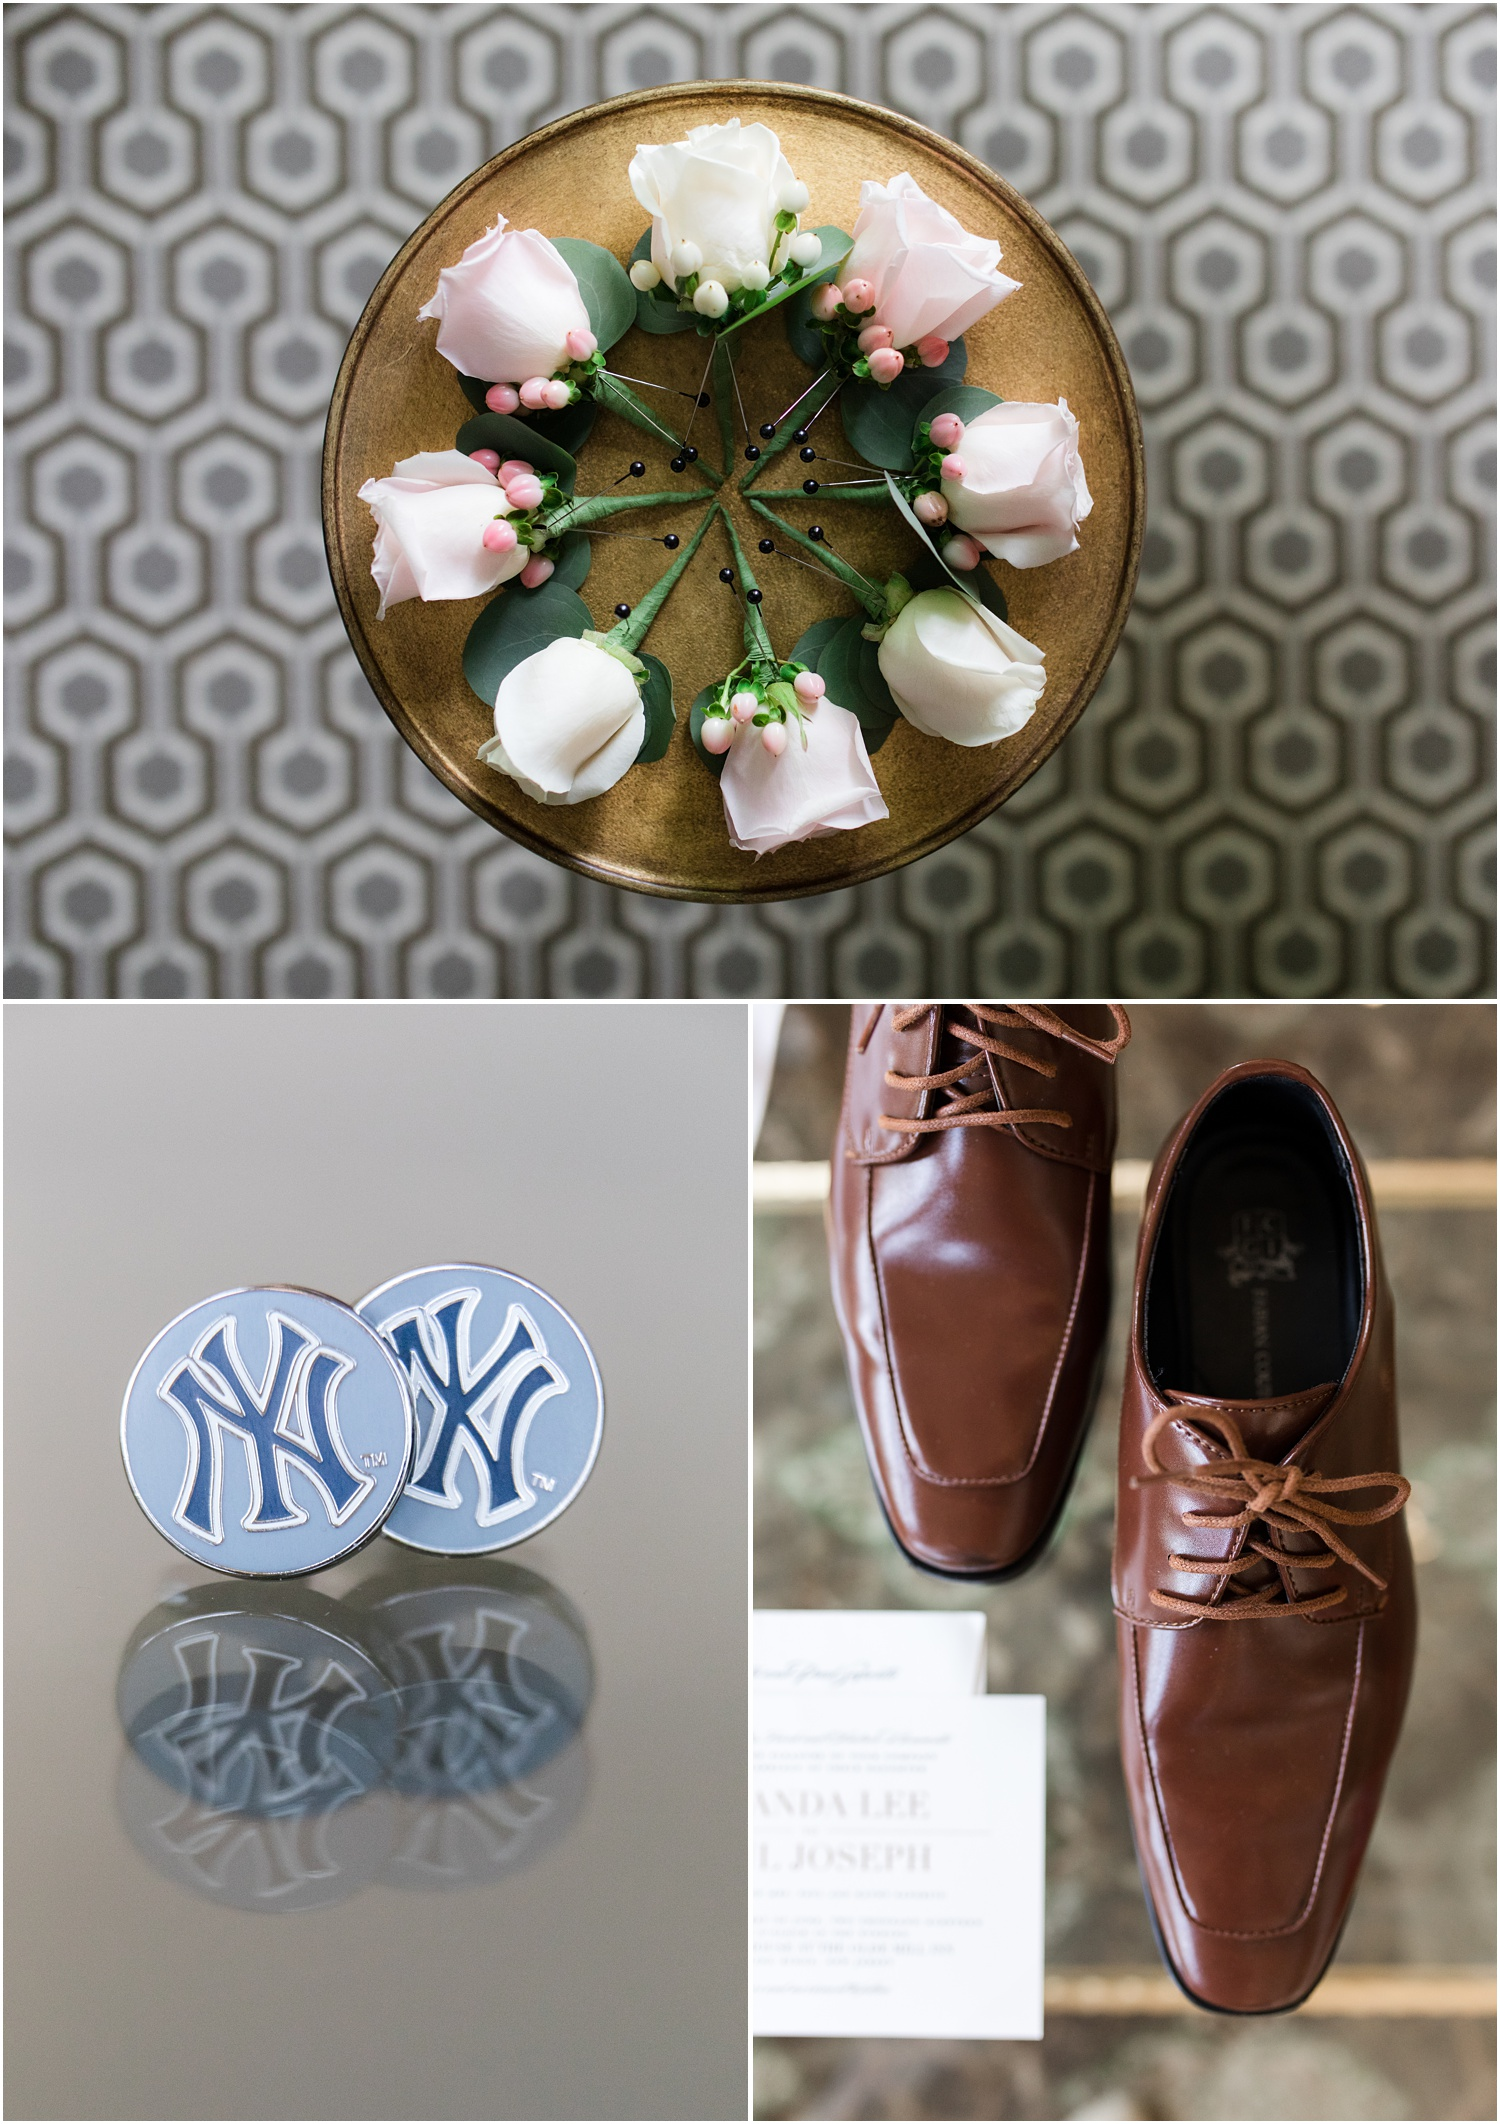 Grooms accessories and details at The Olde Mill Inn in Basking Ridge, NJ.